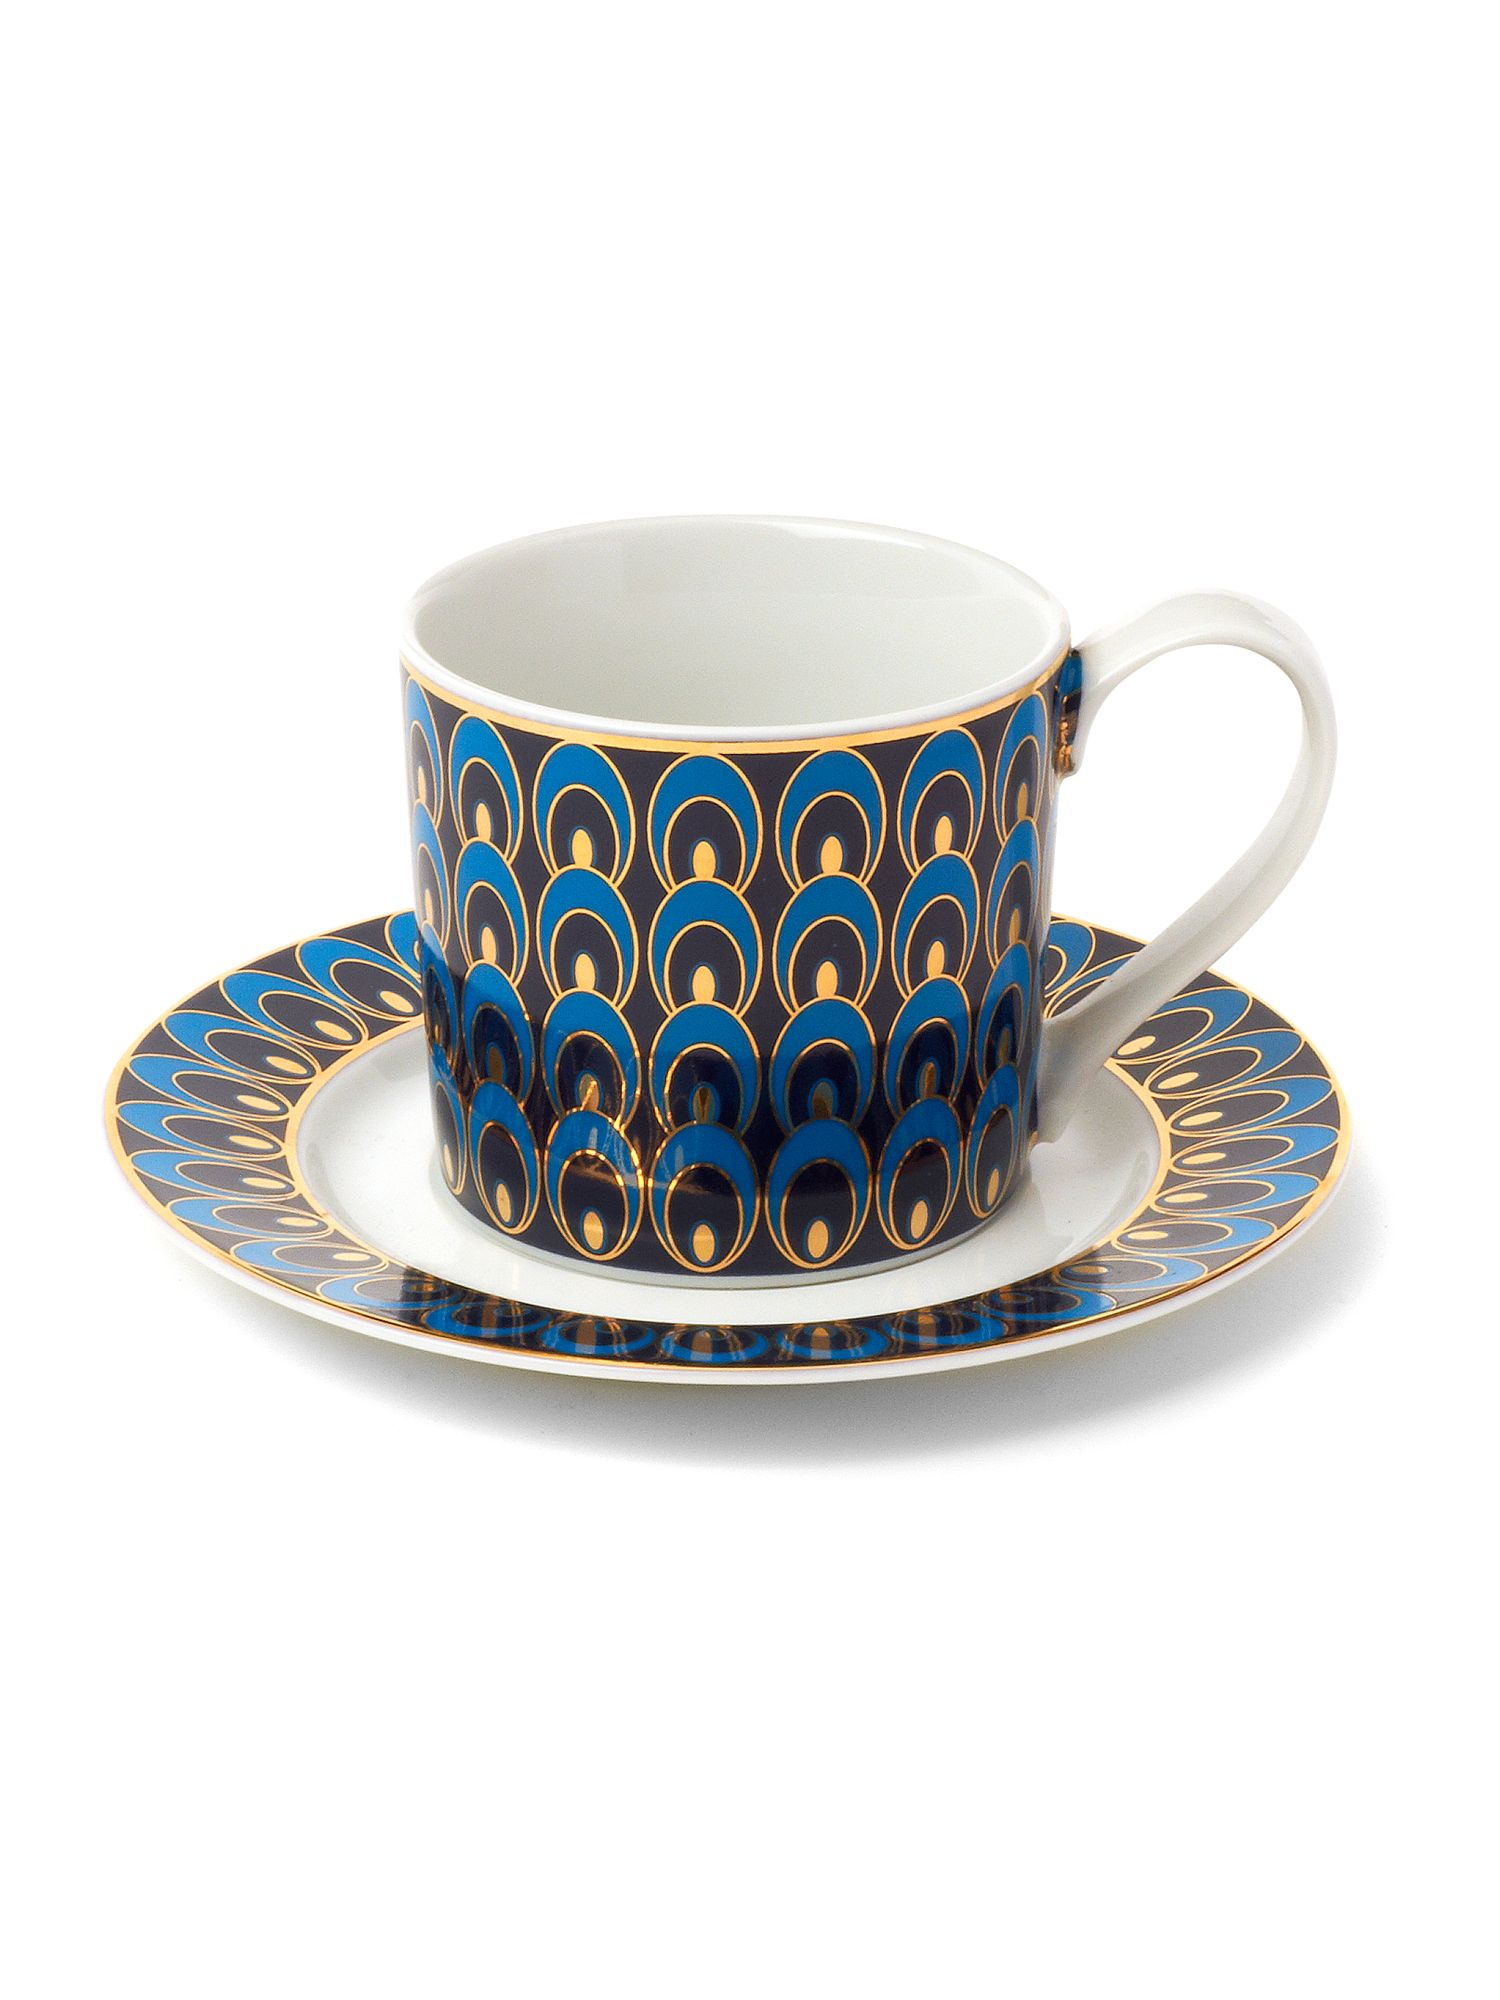 Peacock tea cup and saucer